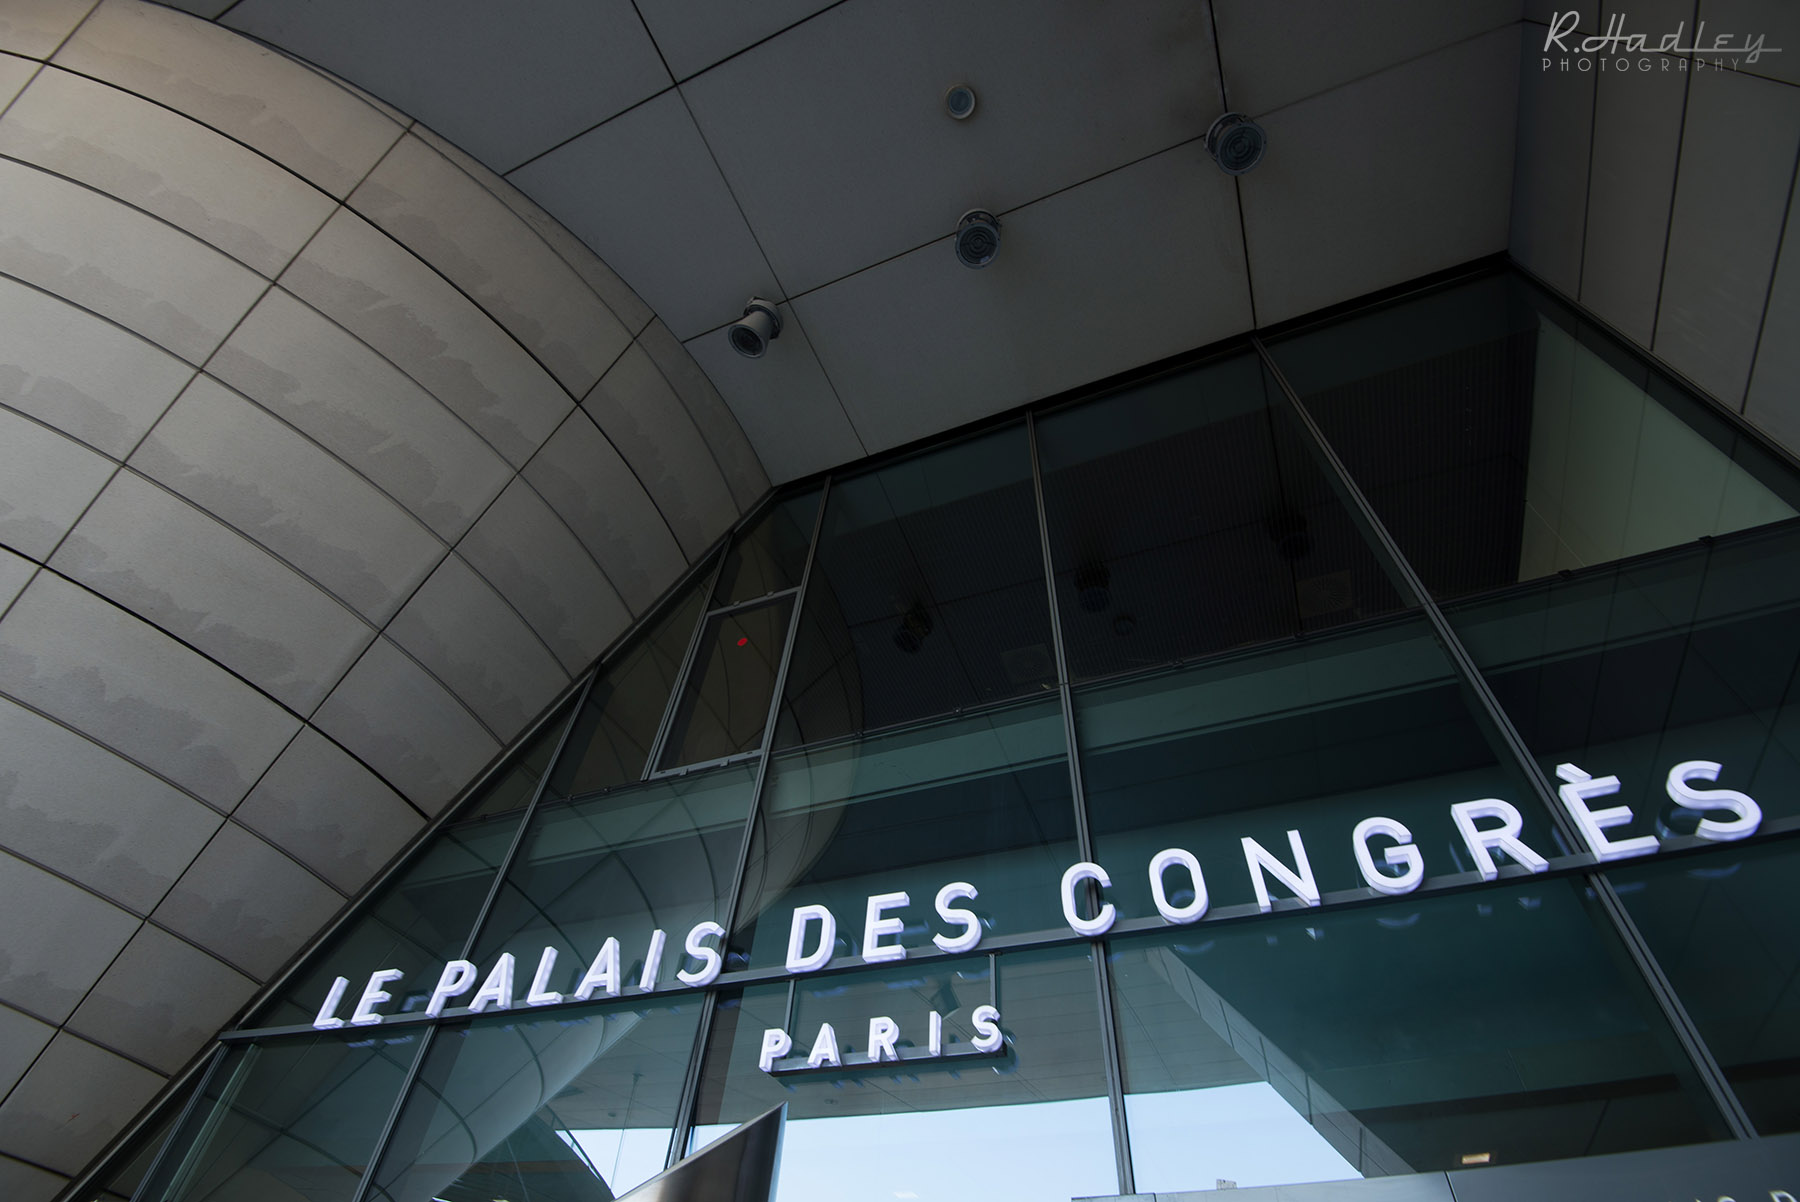 Congress event photographer in Paris at Le Palais des Congres